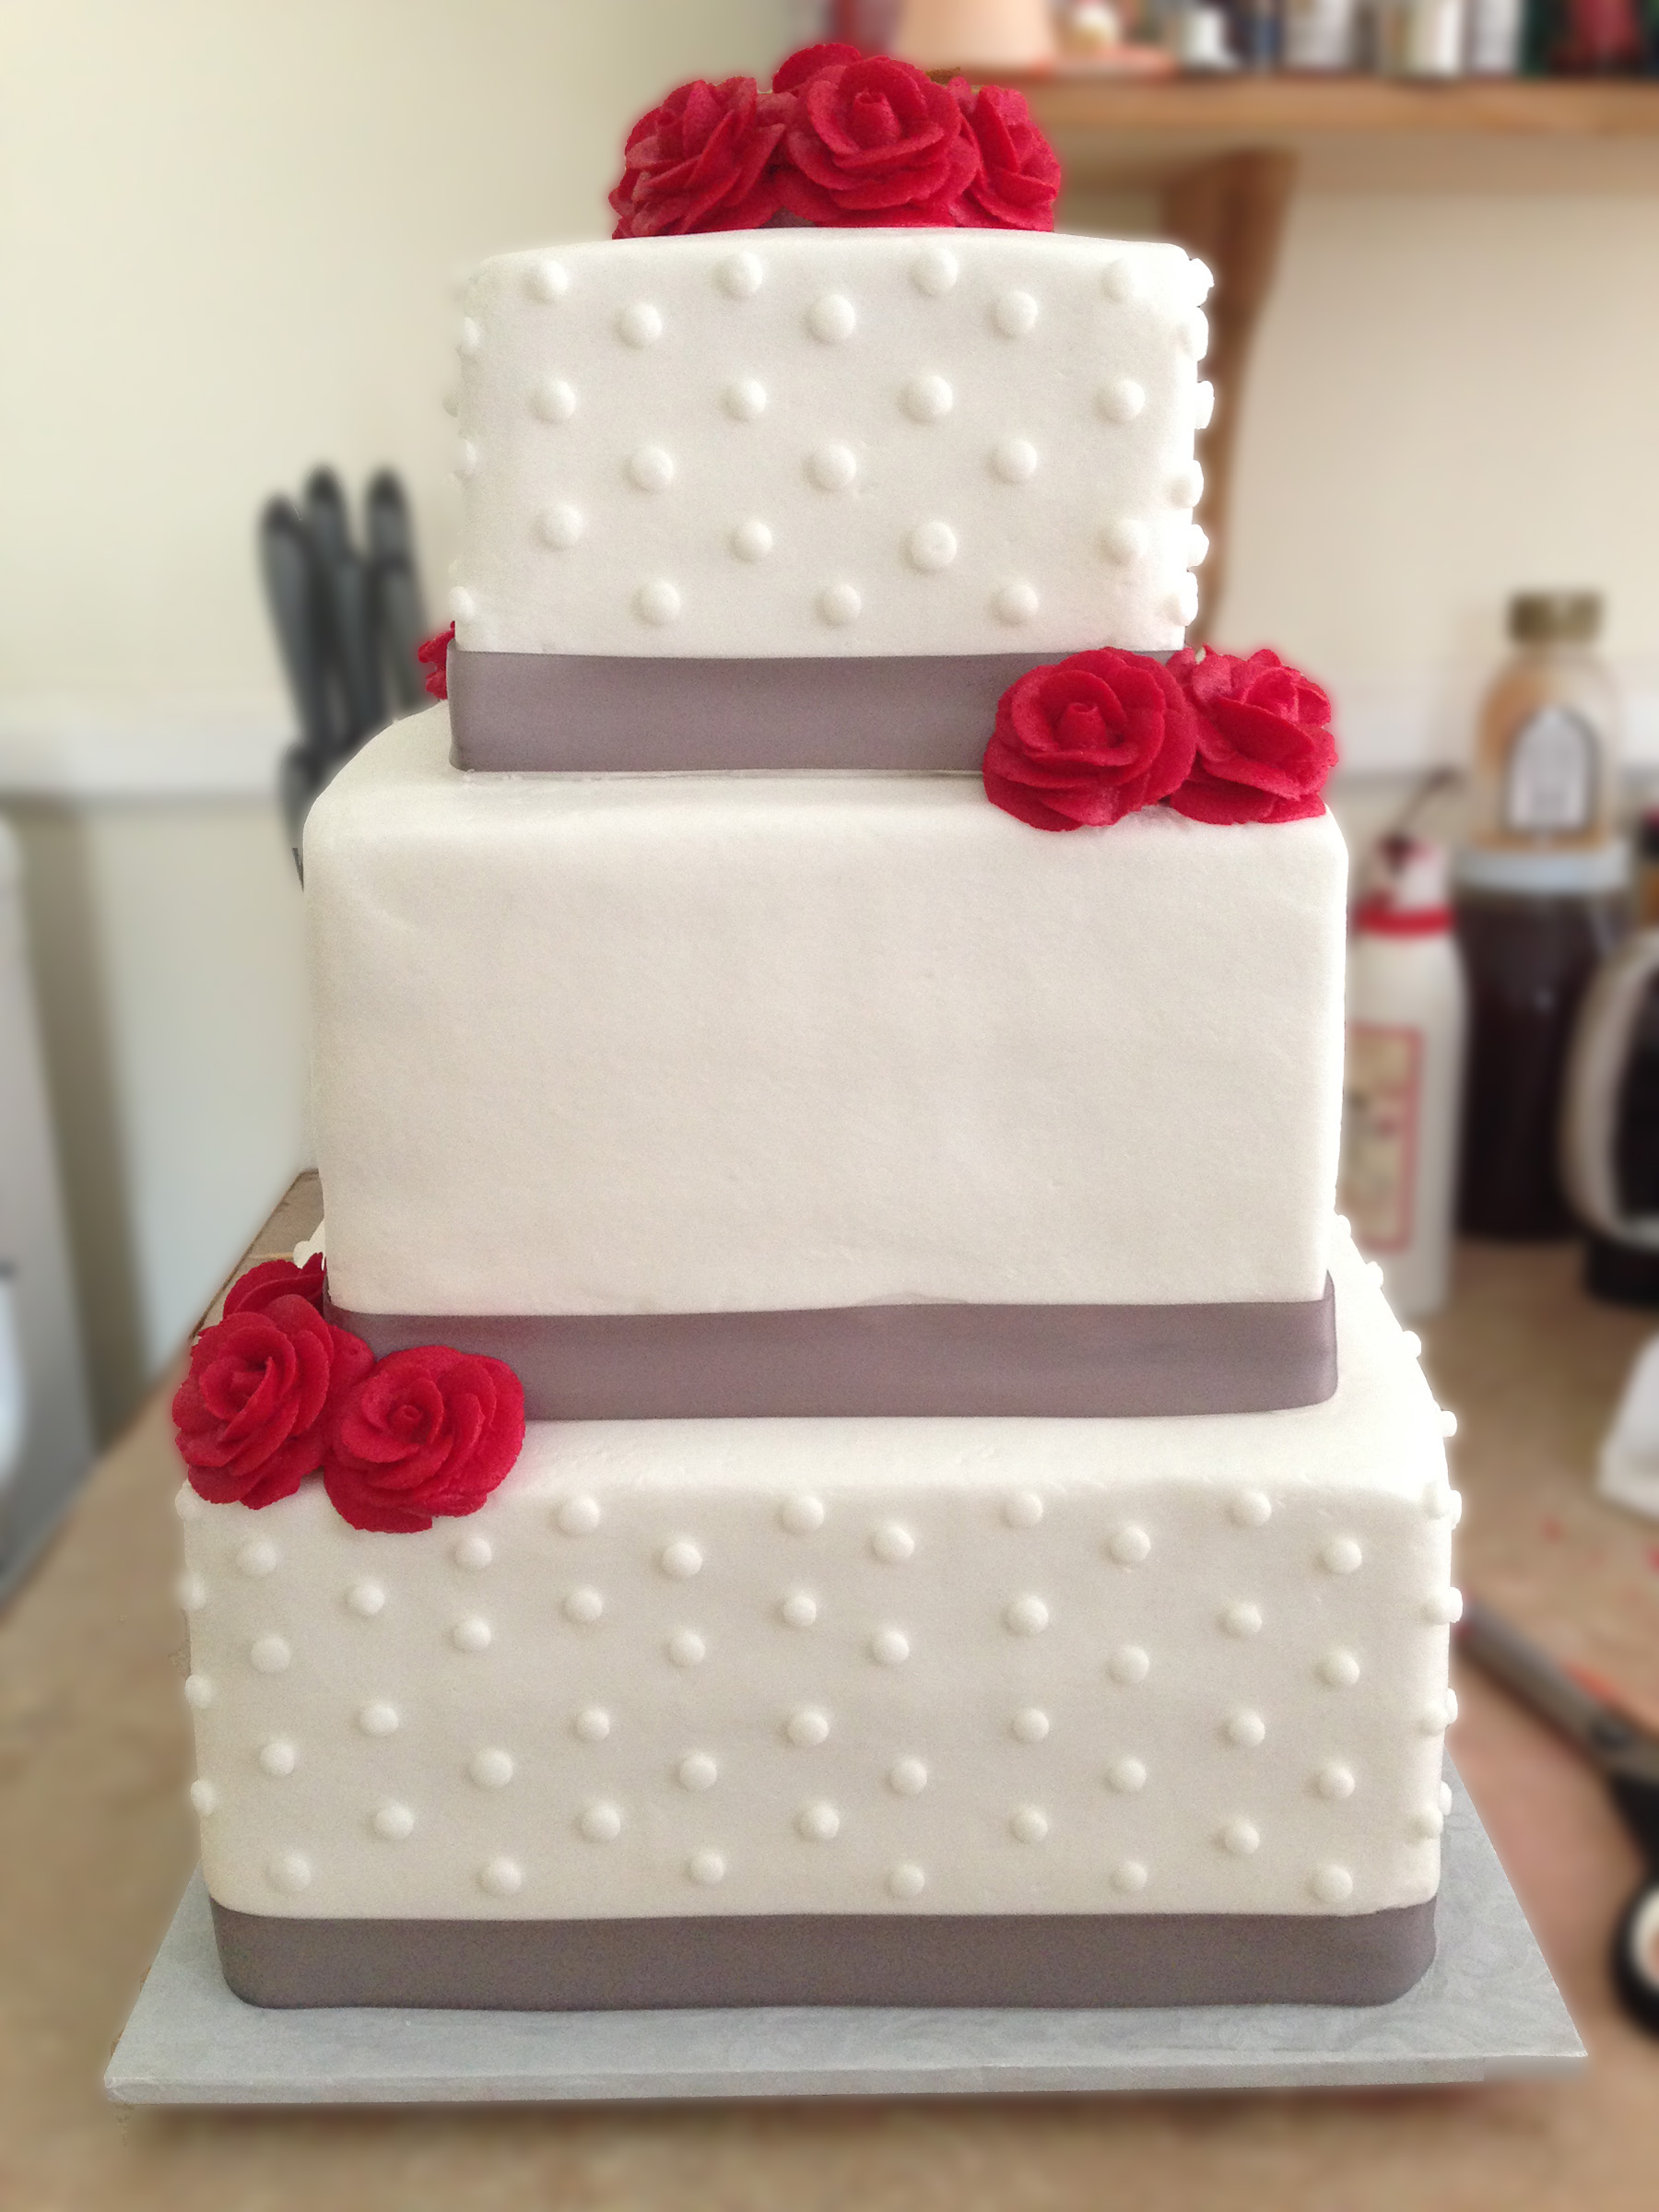 White dotted cake with red and gray accents